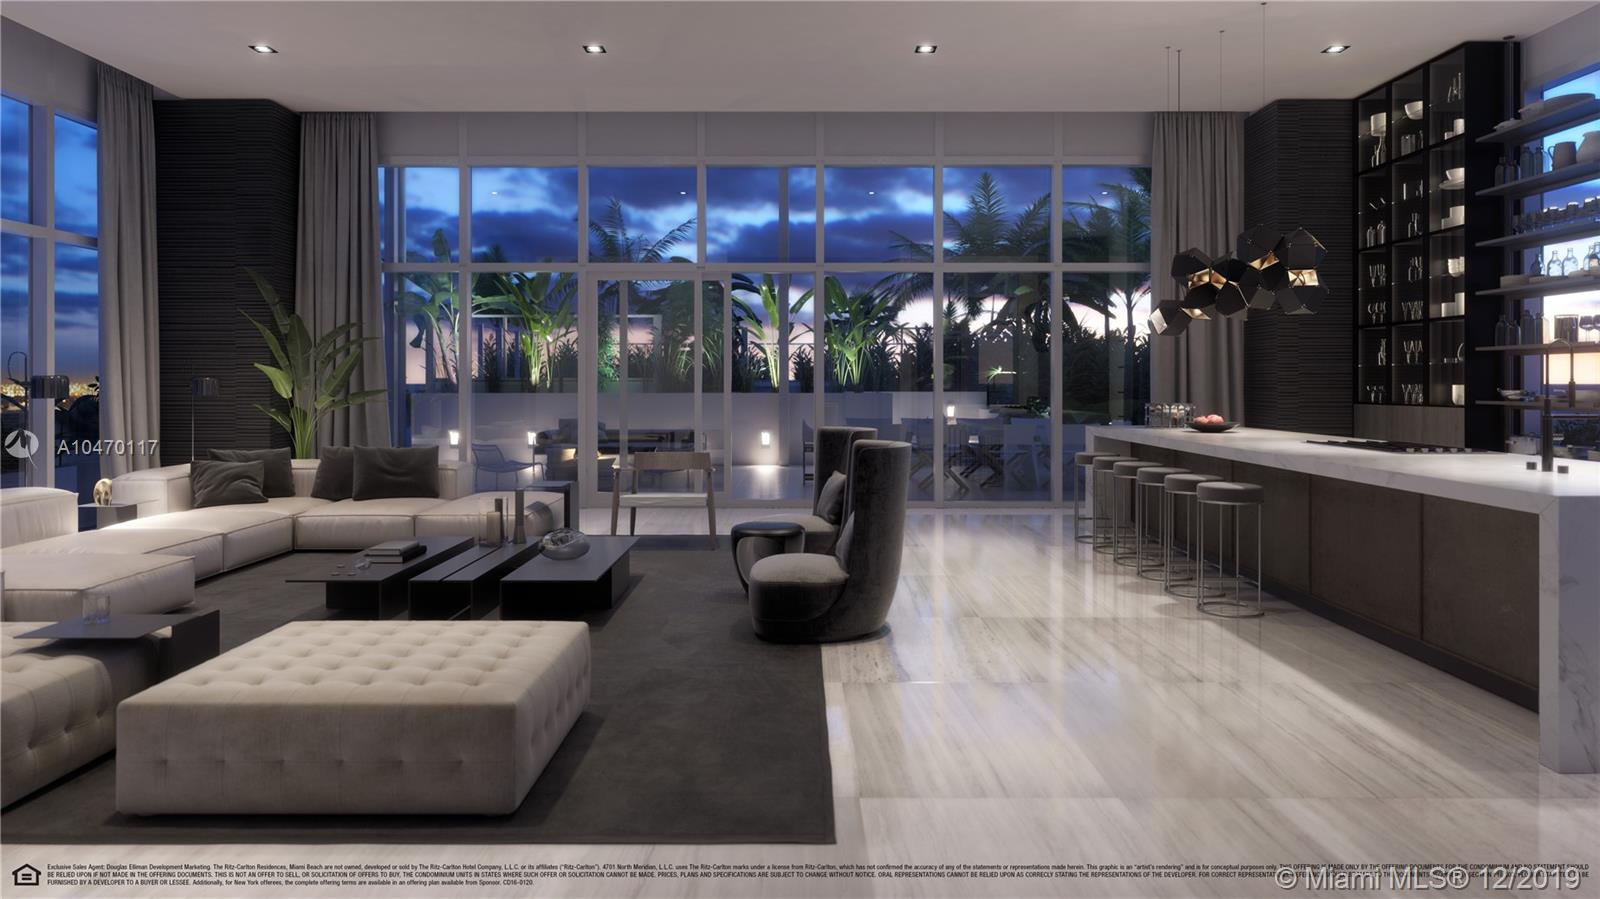 Photo of The Ritz-carlton Apt PH01 that clicks through to the property detail page